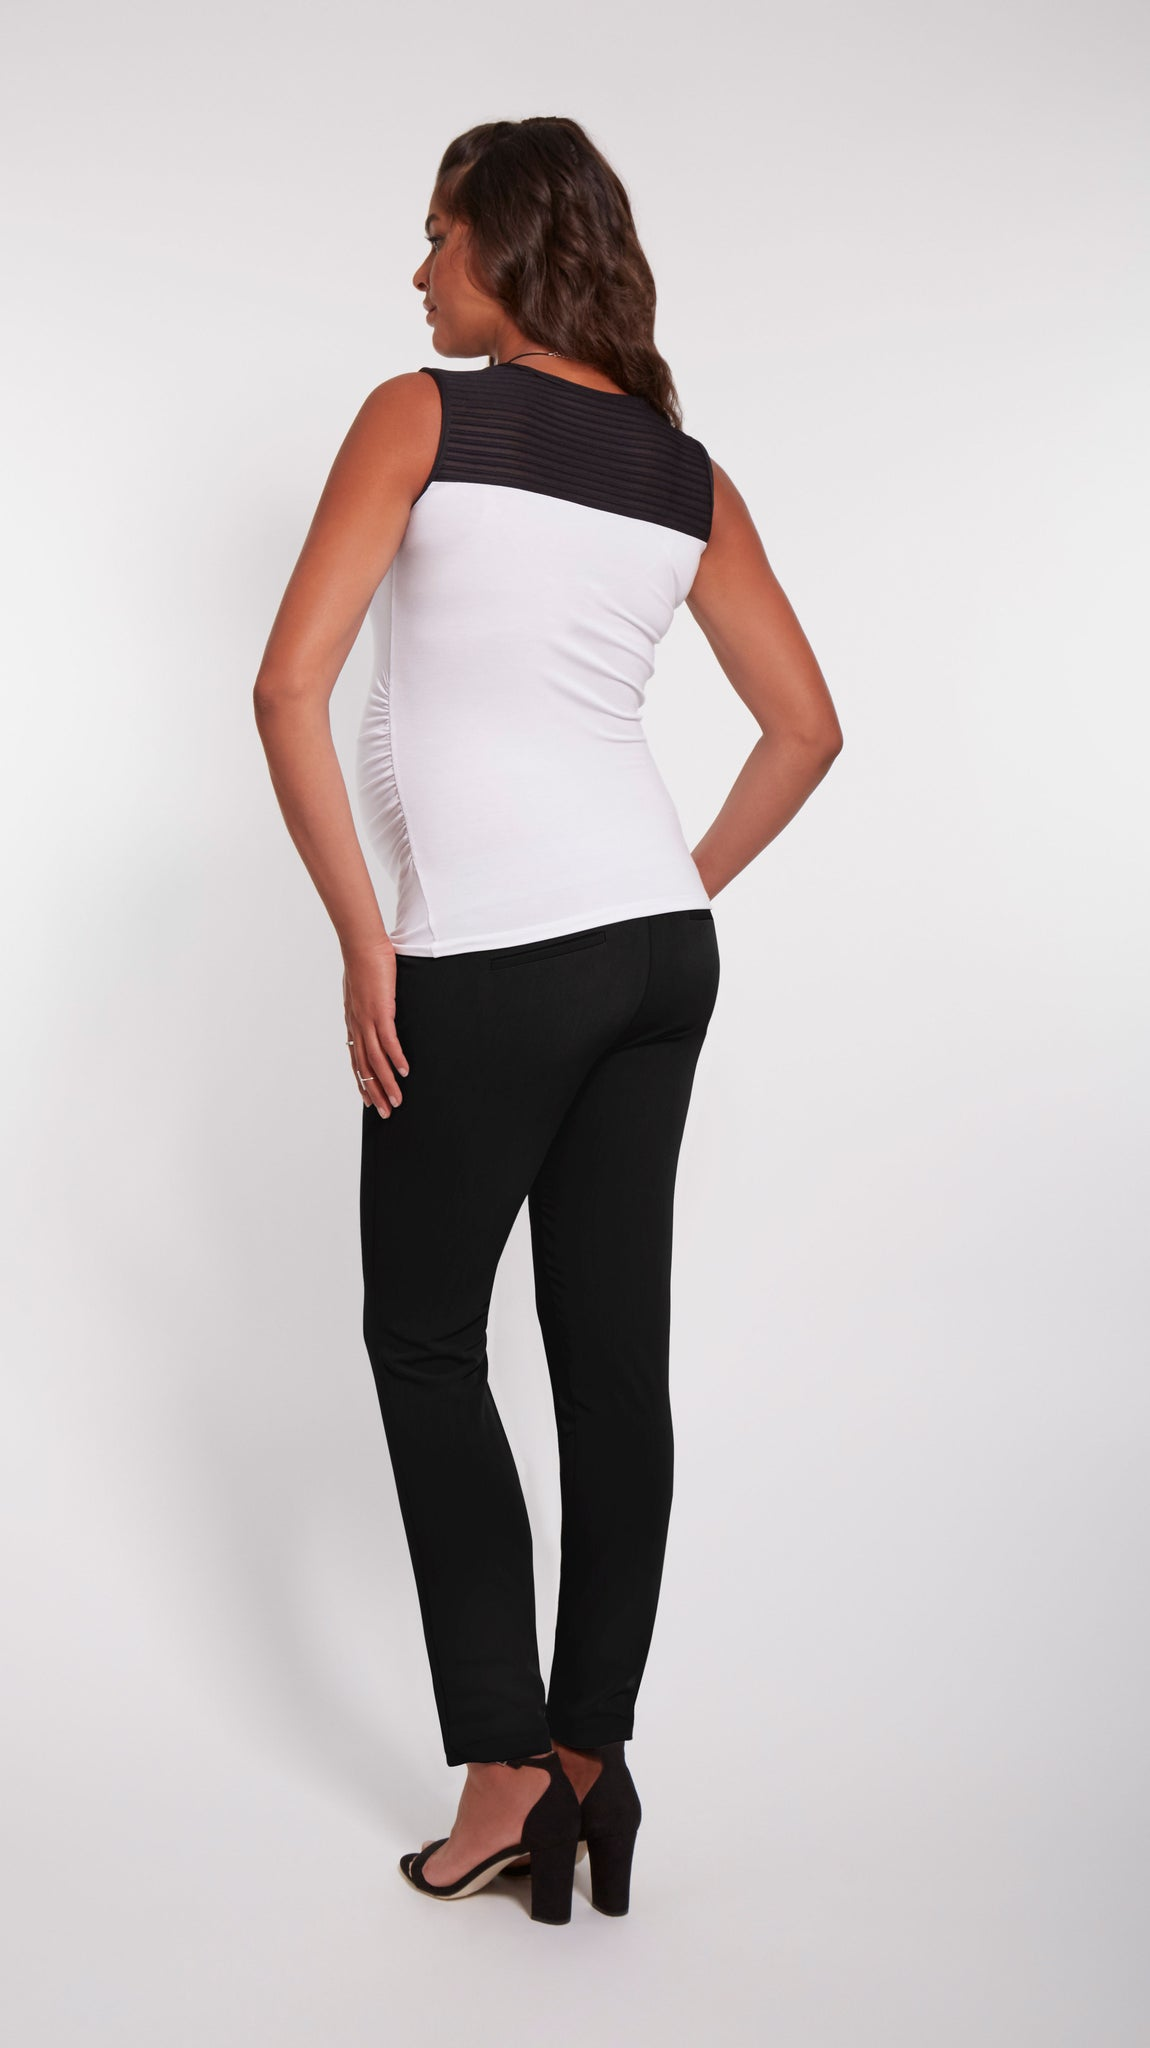 Black & White Contrast Maternity Top